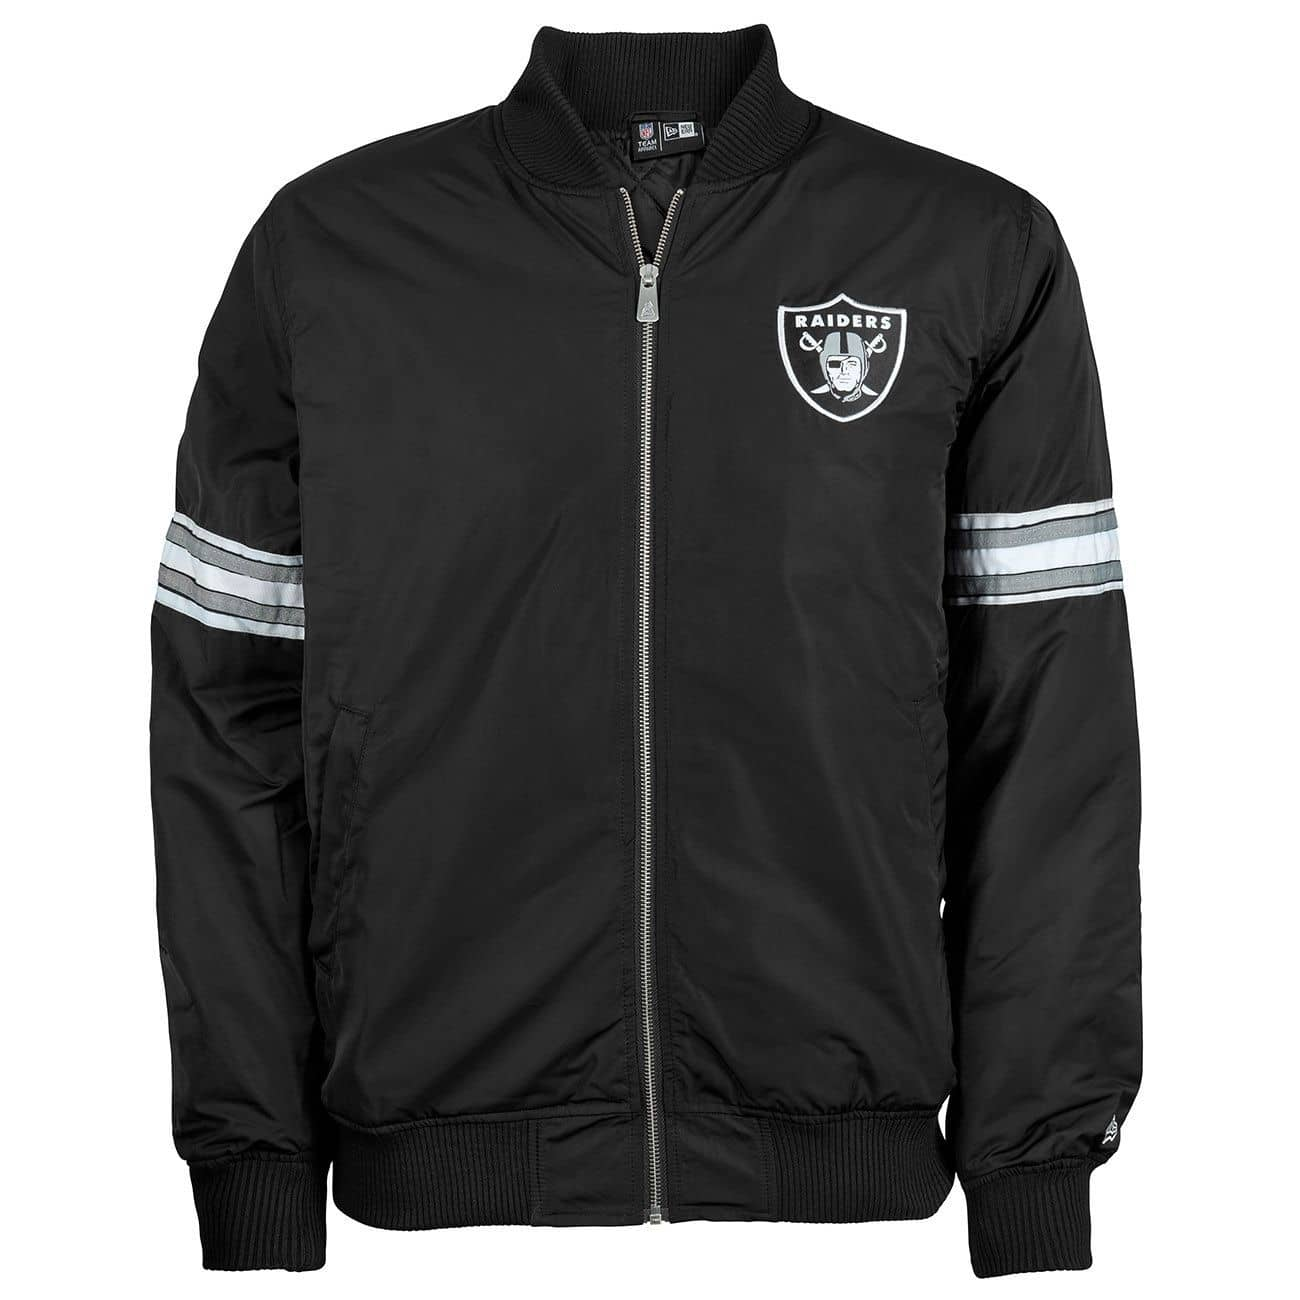 be7b32a57 New Era Oakland Raiders Team Apparel NFL Bomber Jacke Black